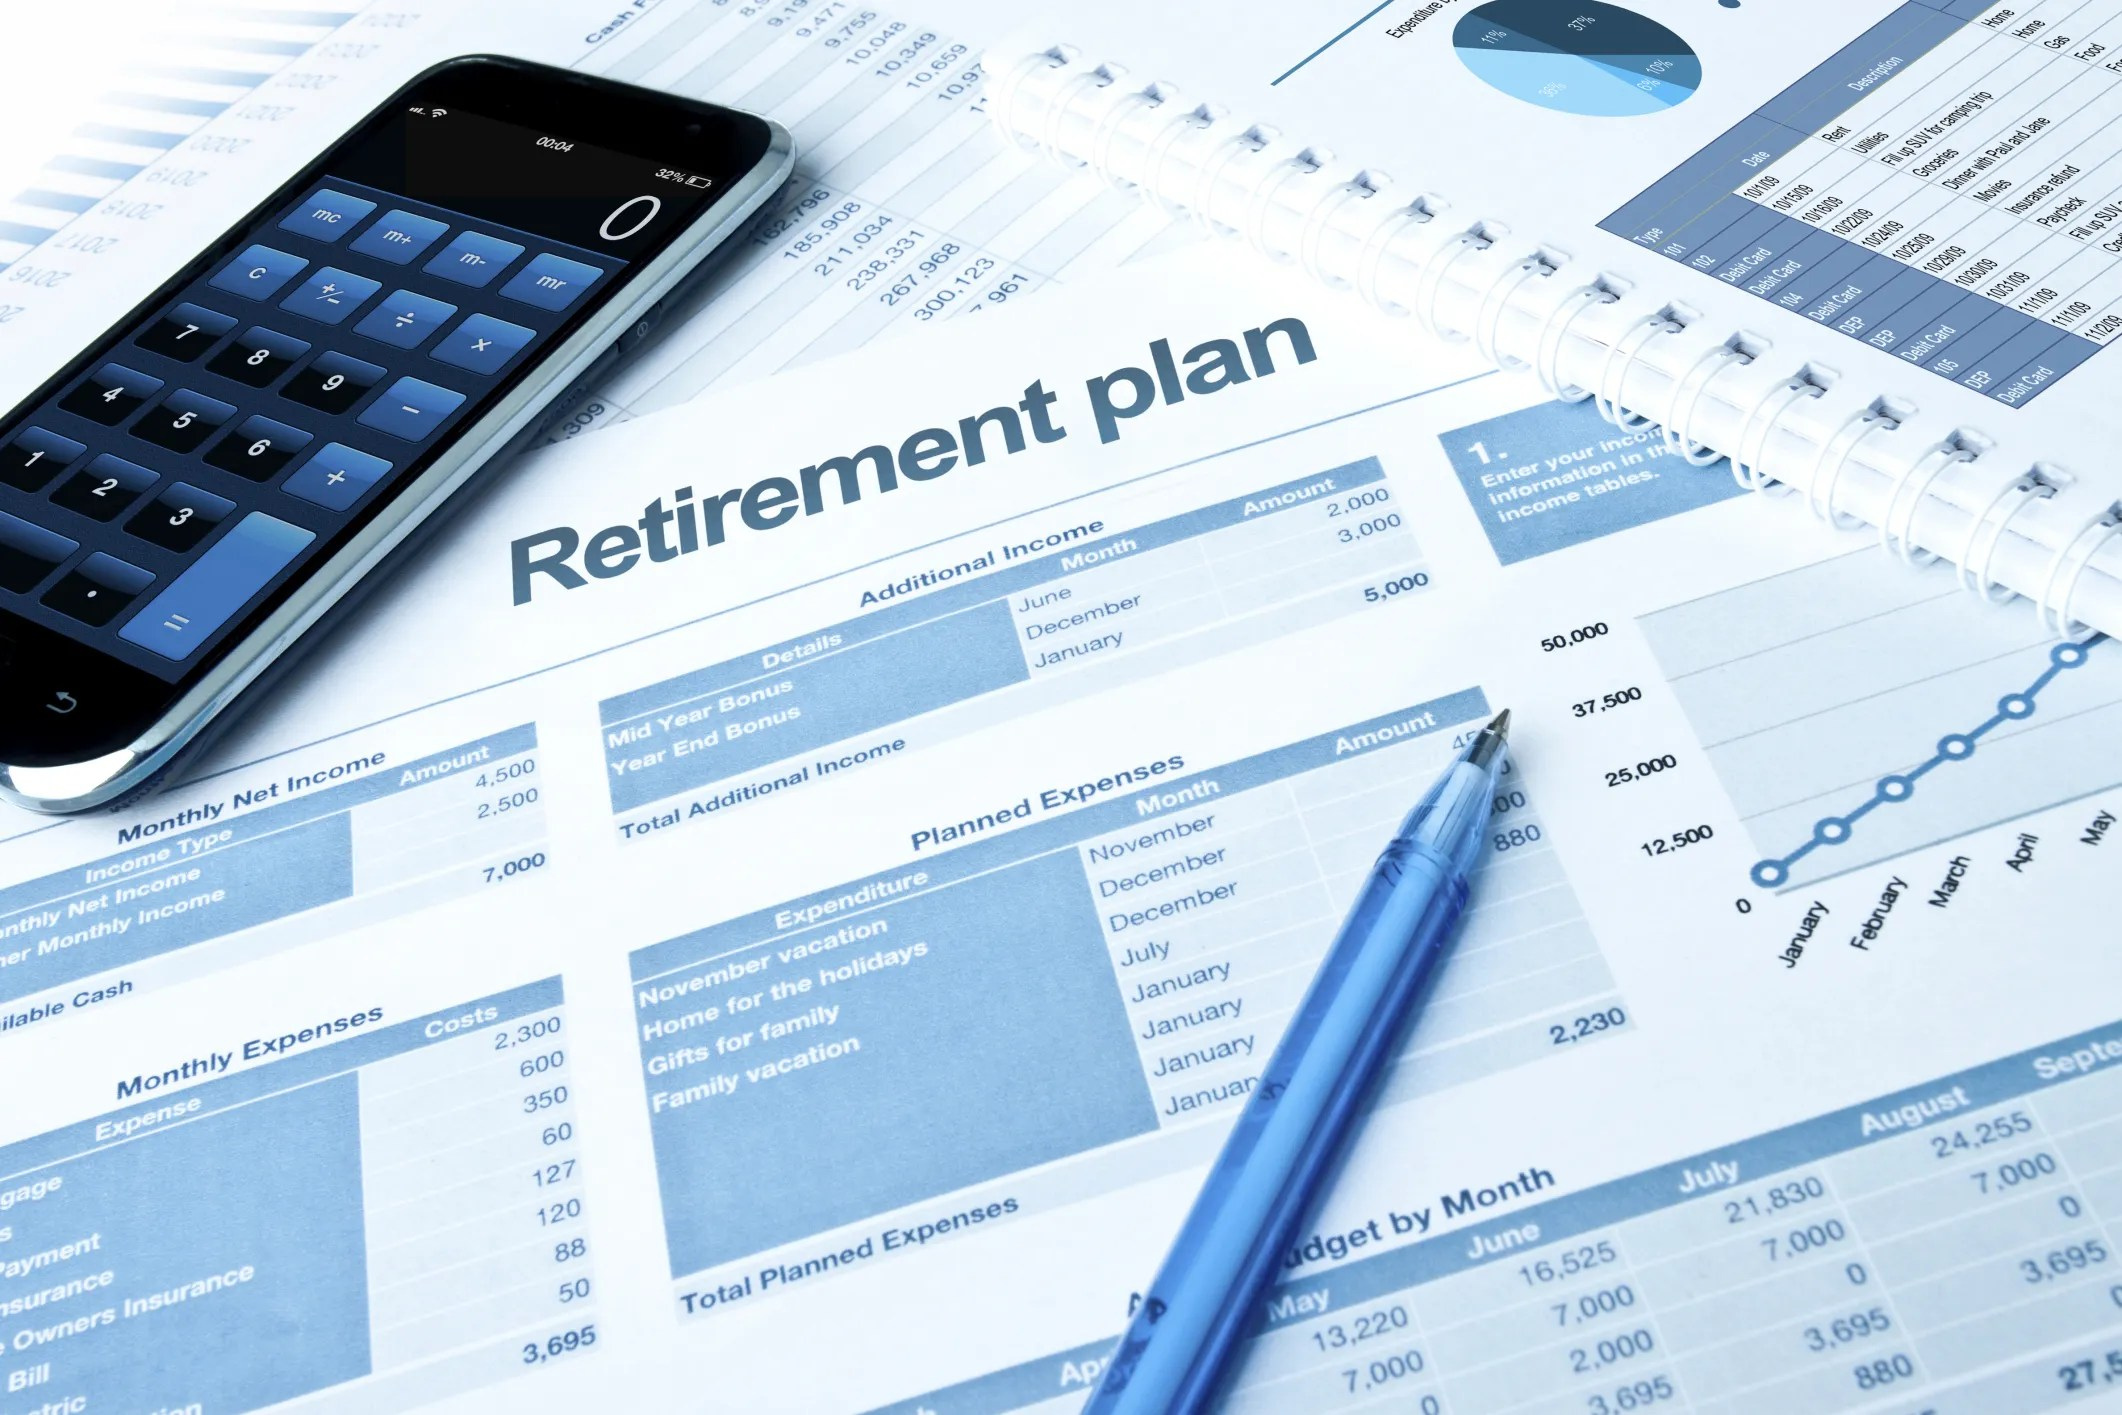 New Yorkers may have a new way to save for retirement - retirement program